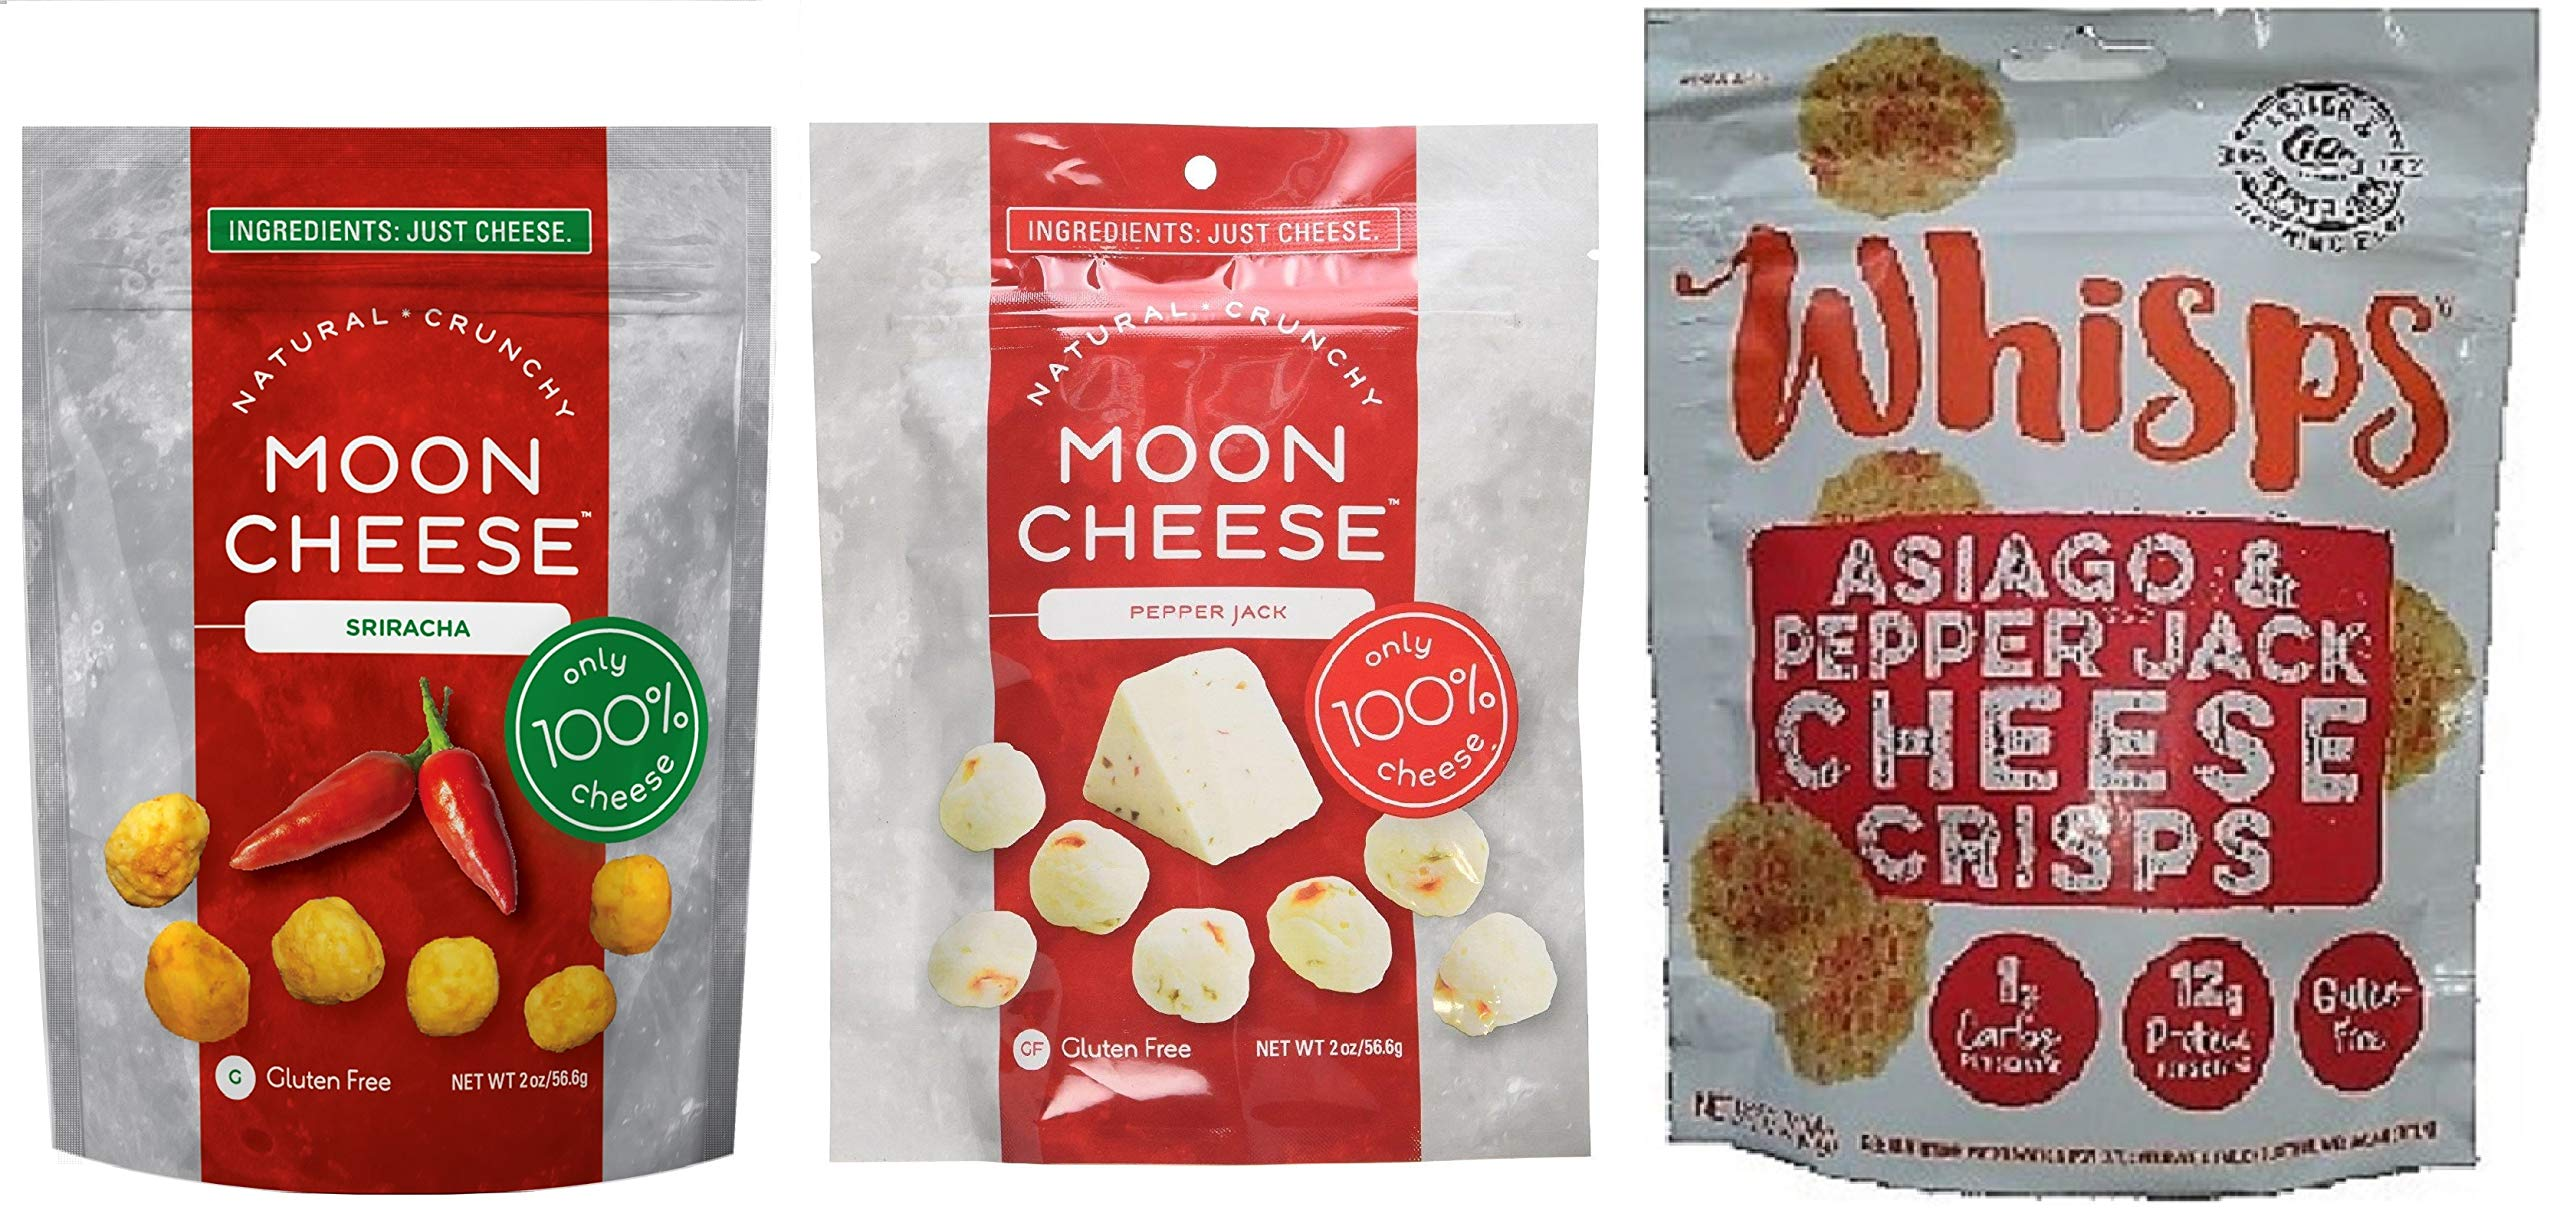 3 Pack Spicy Cheese Snack Bundle: Moon Cheese Pepper Jack and Sriracha + Cello Whisps Asiago/Pepper Jack; Low Carb, Keto Friendly, 100% Natural Cheese